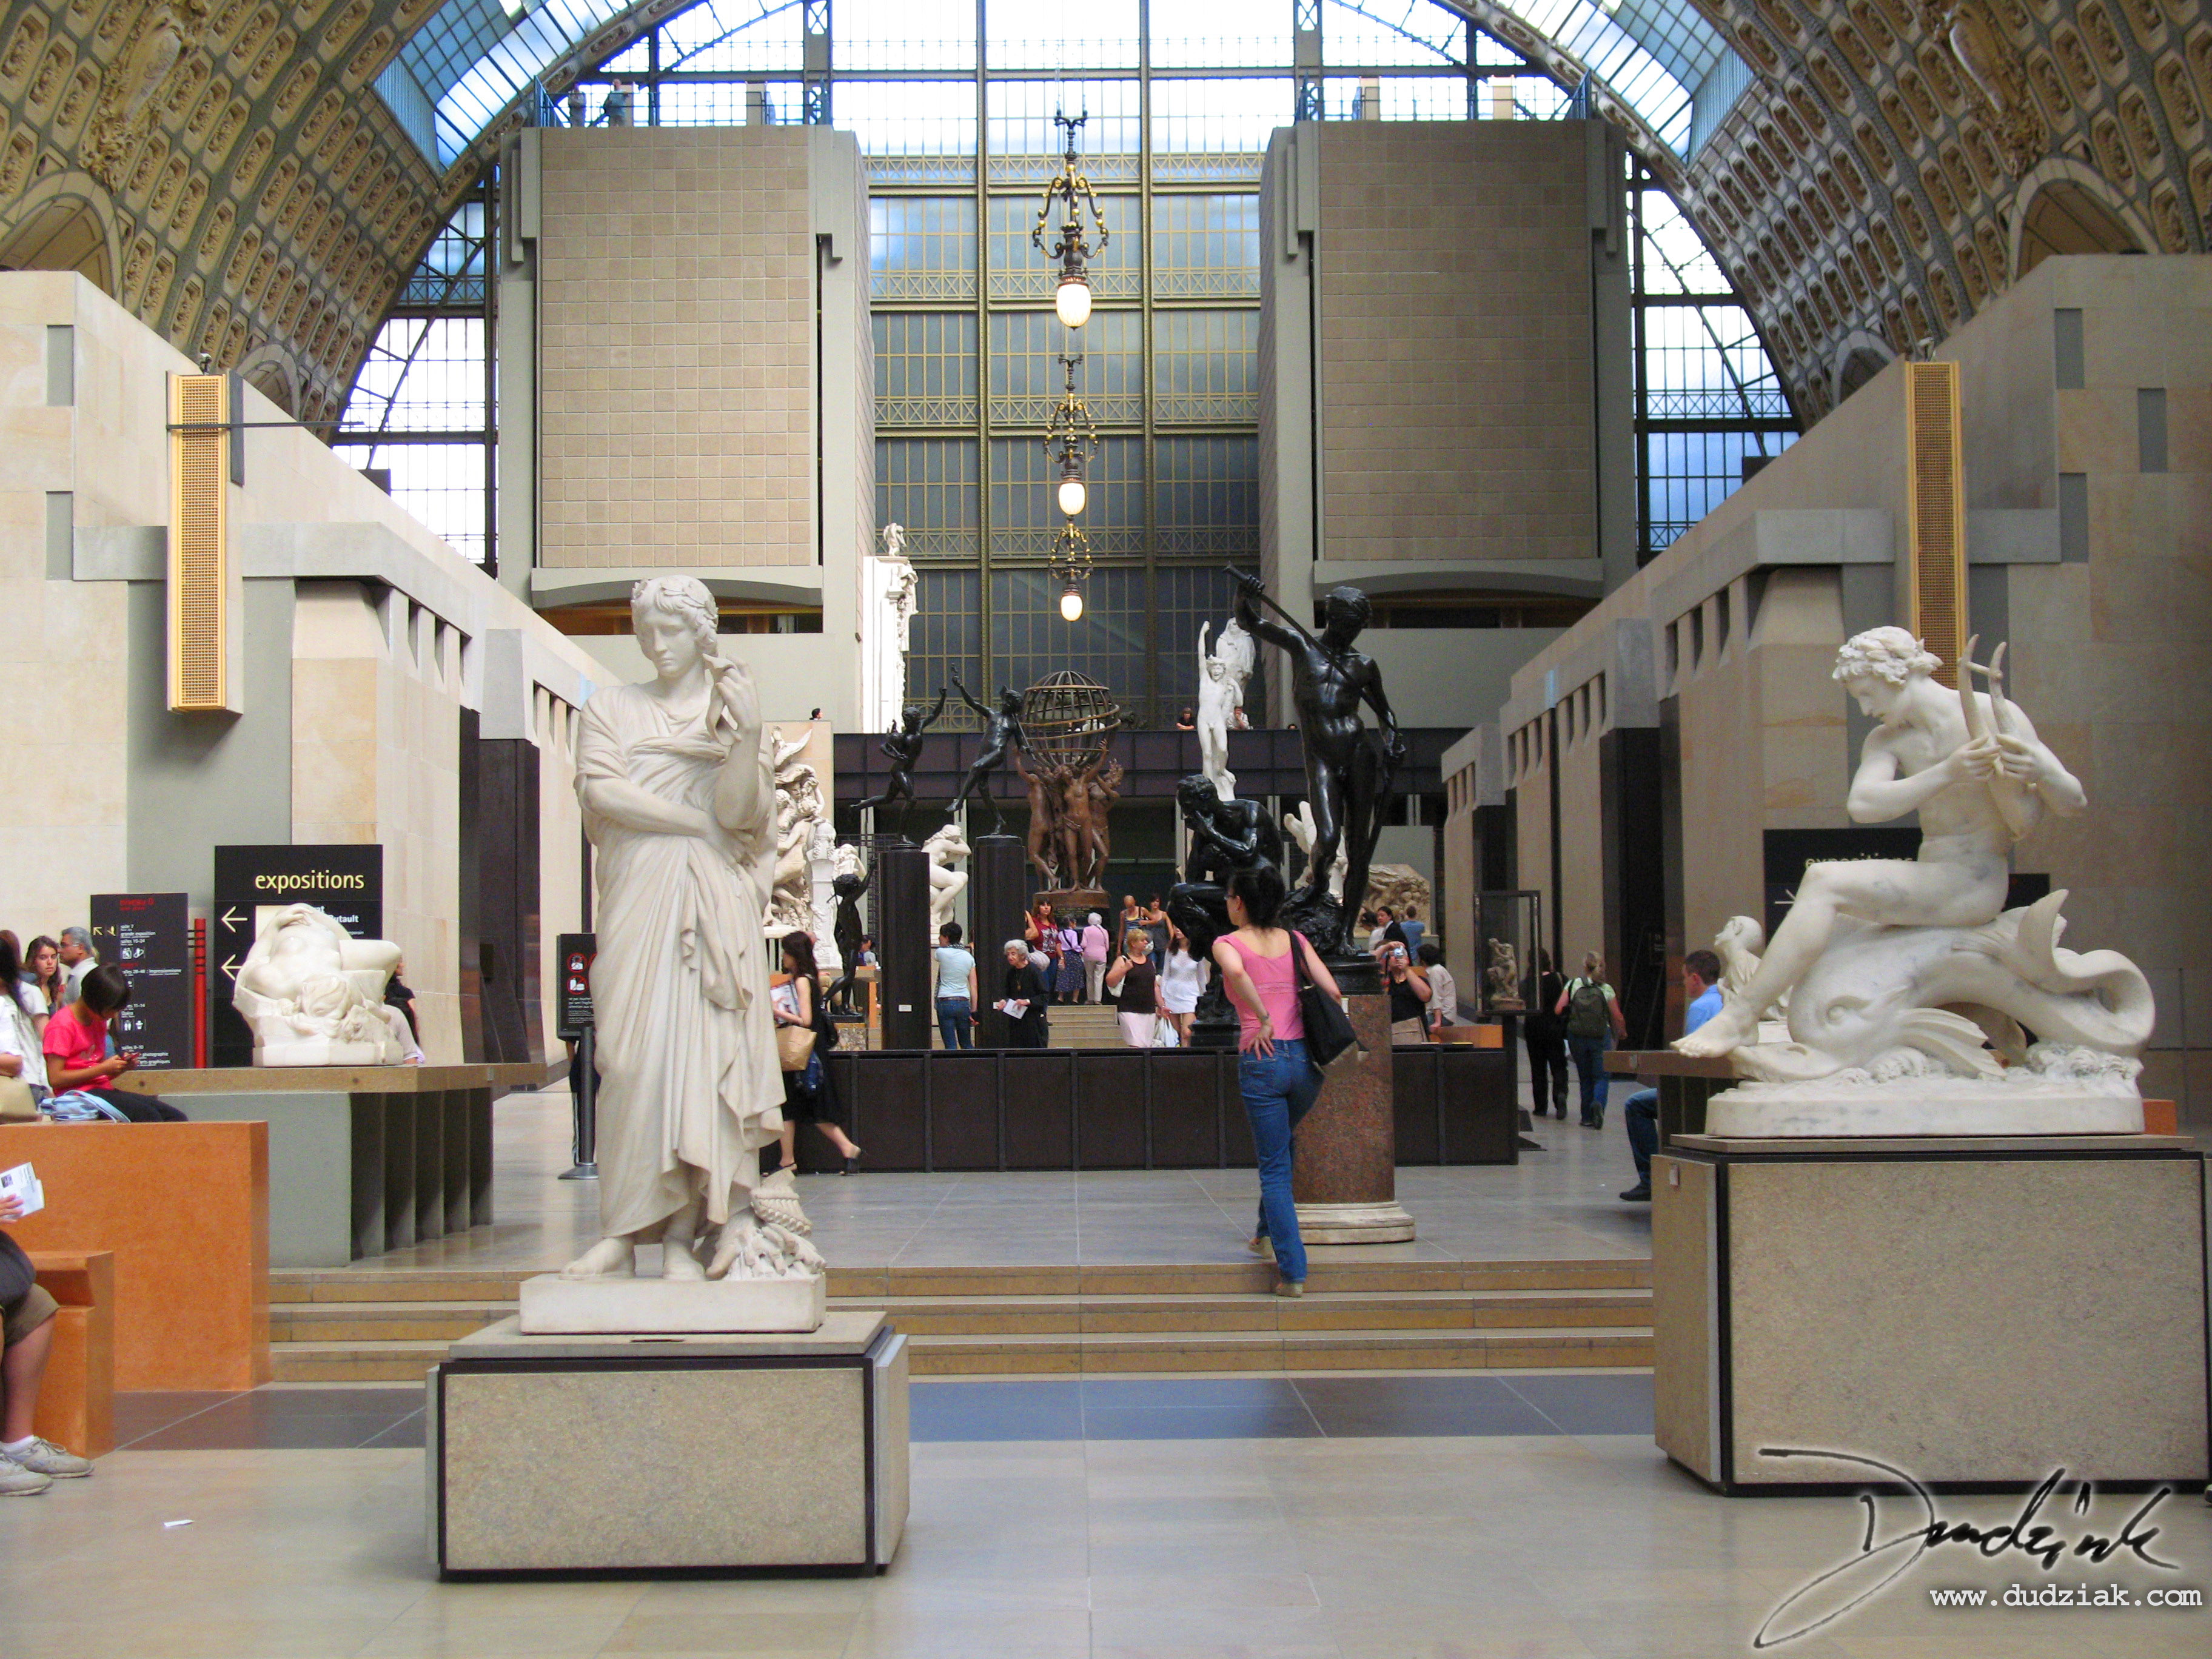 sculptures,  Orsay Museum,  France,  Musée d'Orsay,  Paris